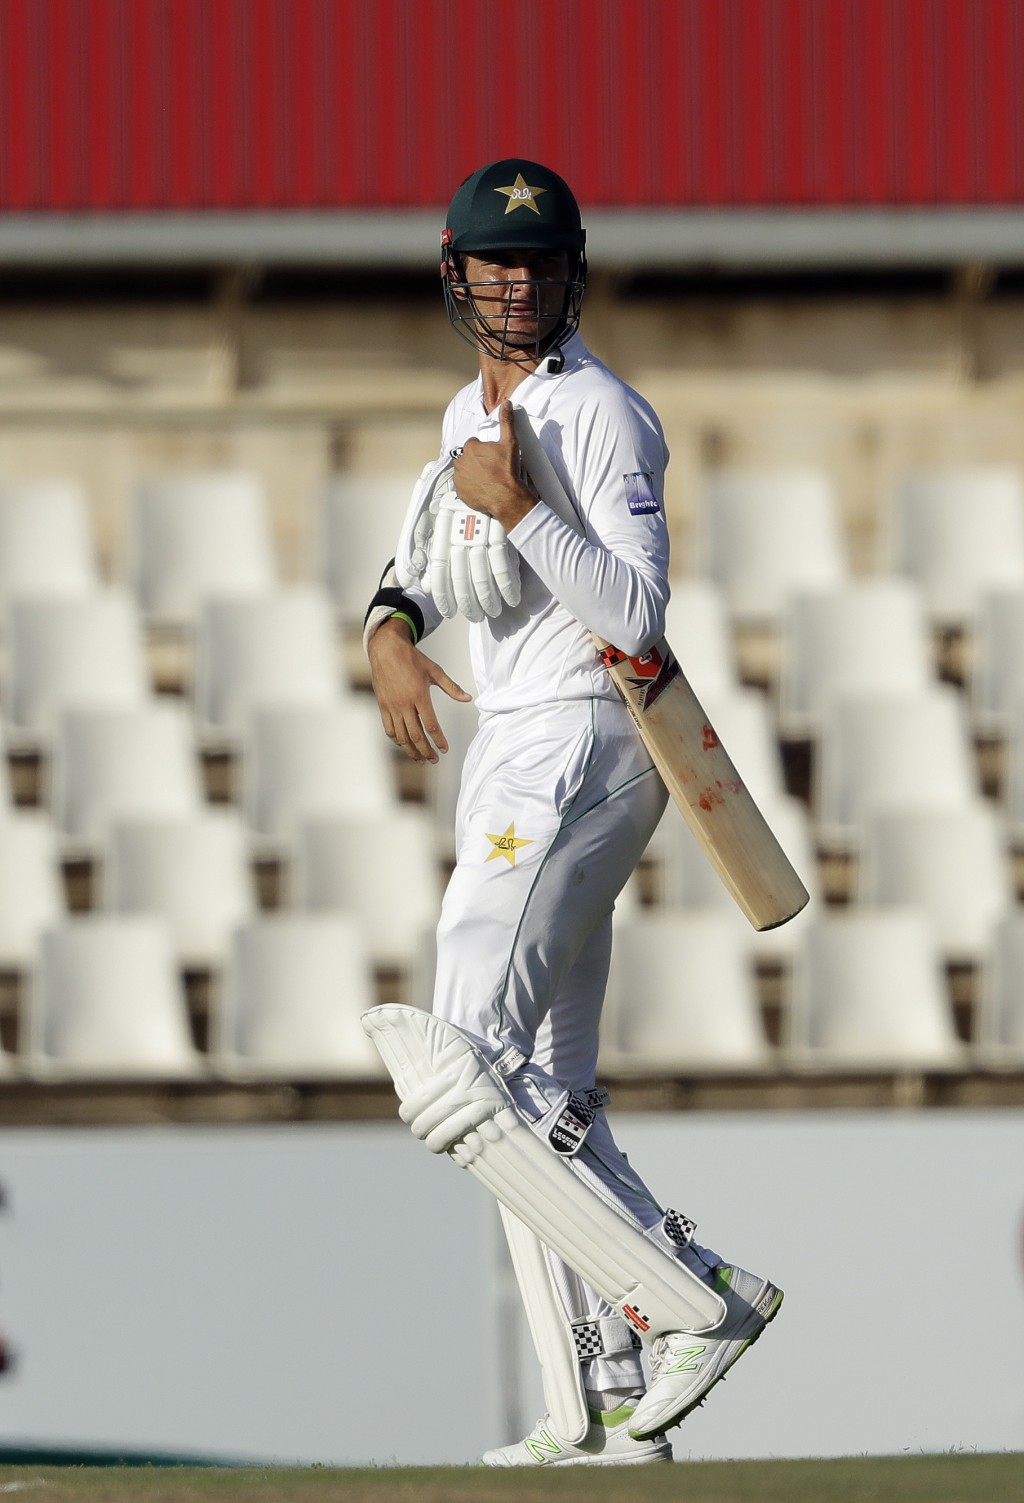 Pakistan's batsman Shaheen Afridi leaves the field after dismissed by South Africa's bowler Duanne Olivier for 4 runs on day two of the first cricket